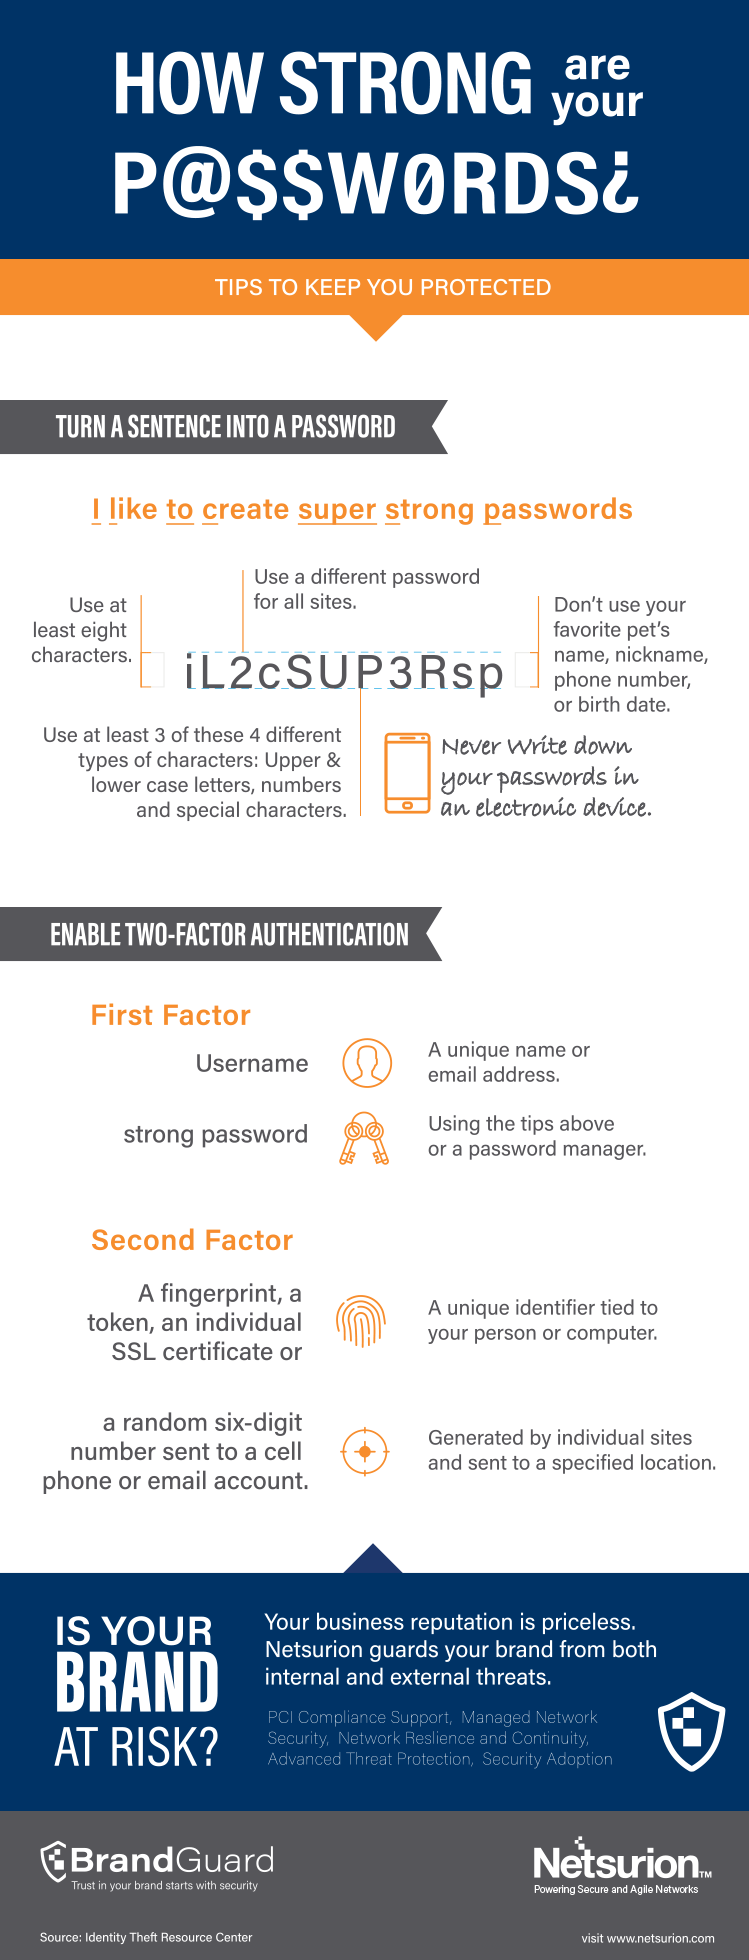 how strong are your passwords infographic